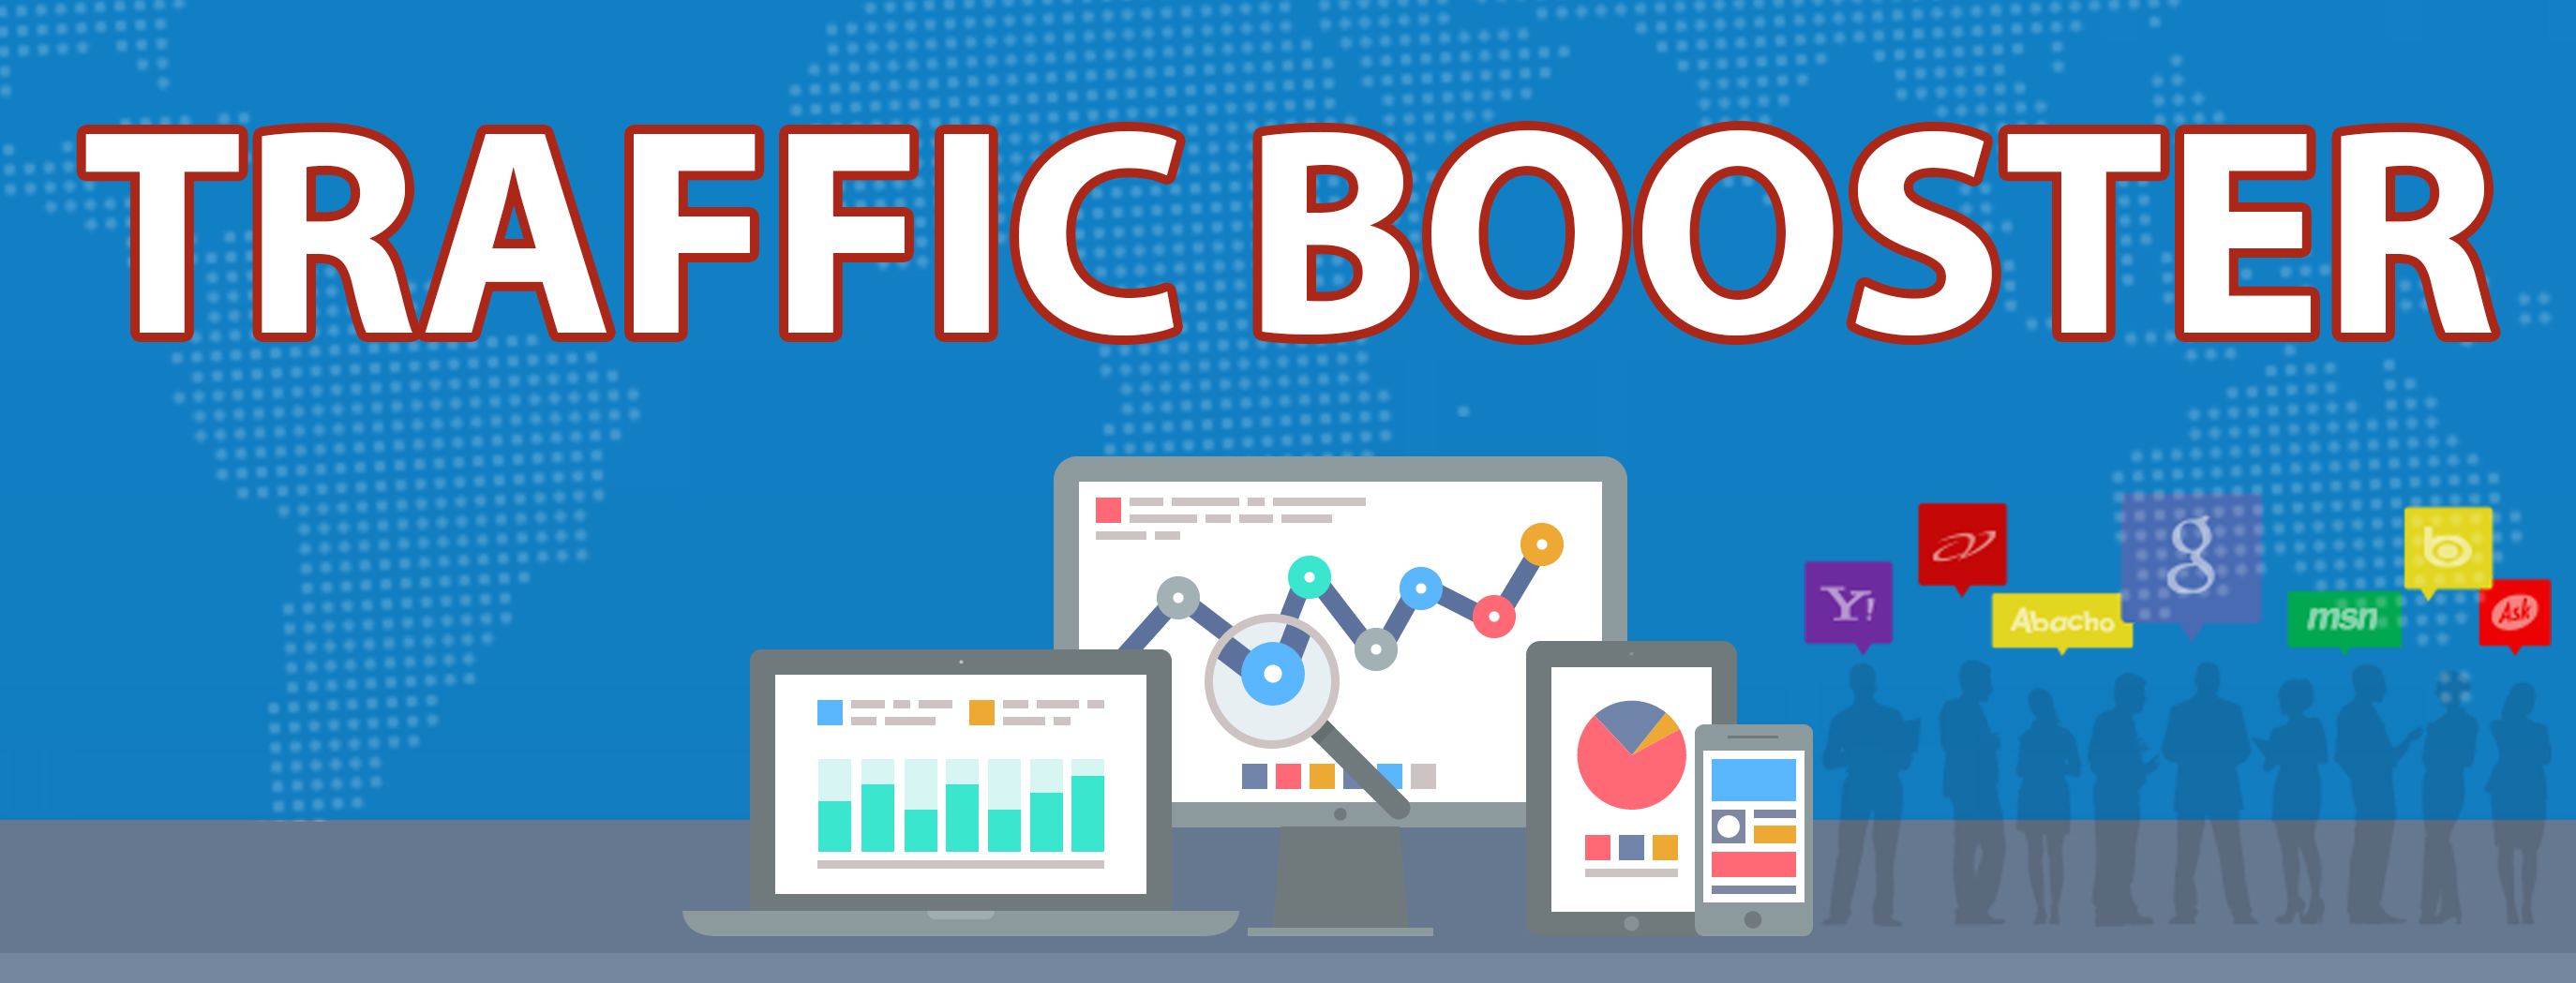 Traffic Booster: Boost your search results | Clearun Marketing